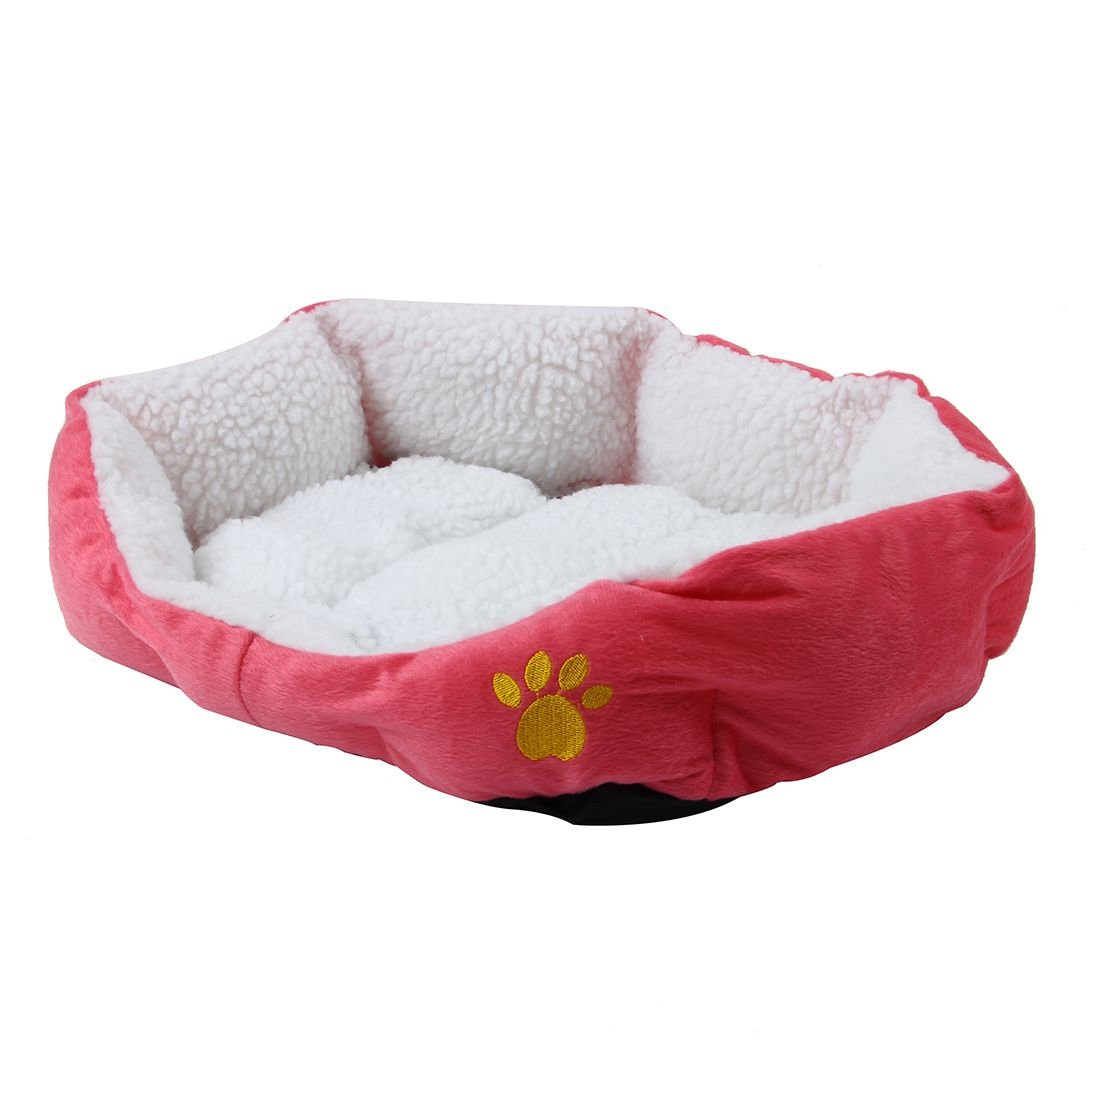 SODIAL(R)BASKET BASKET NICHE CUSHION MATTRESS BED DOG CAT ANIMAL46*42*15cm Small Size Rose